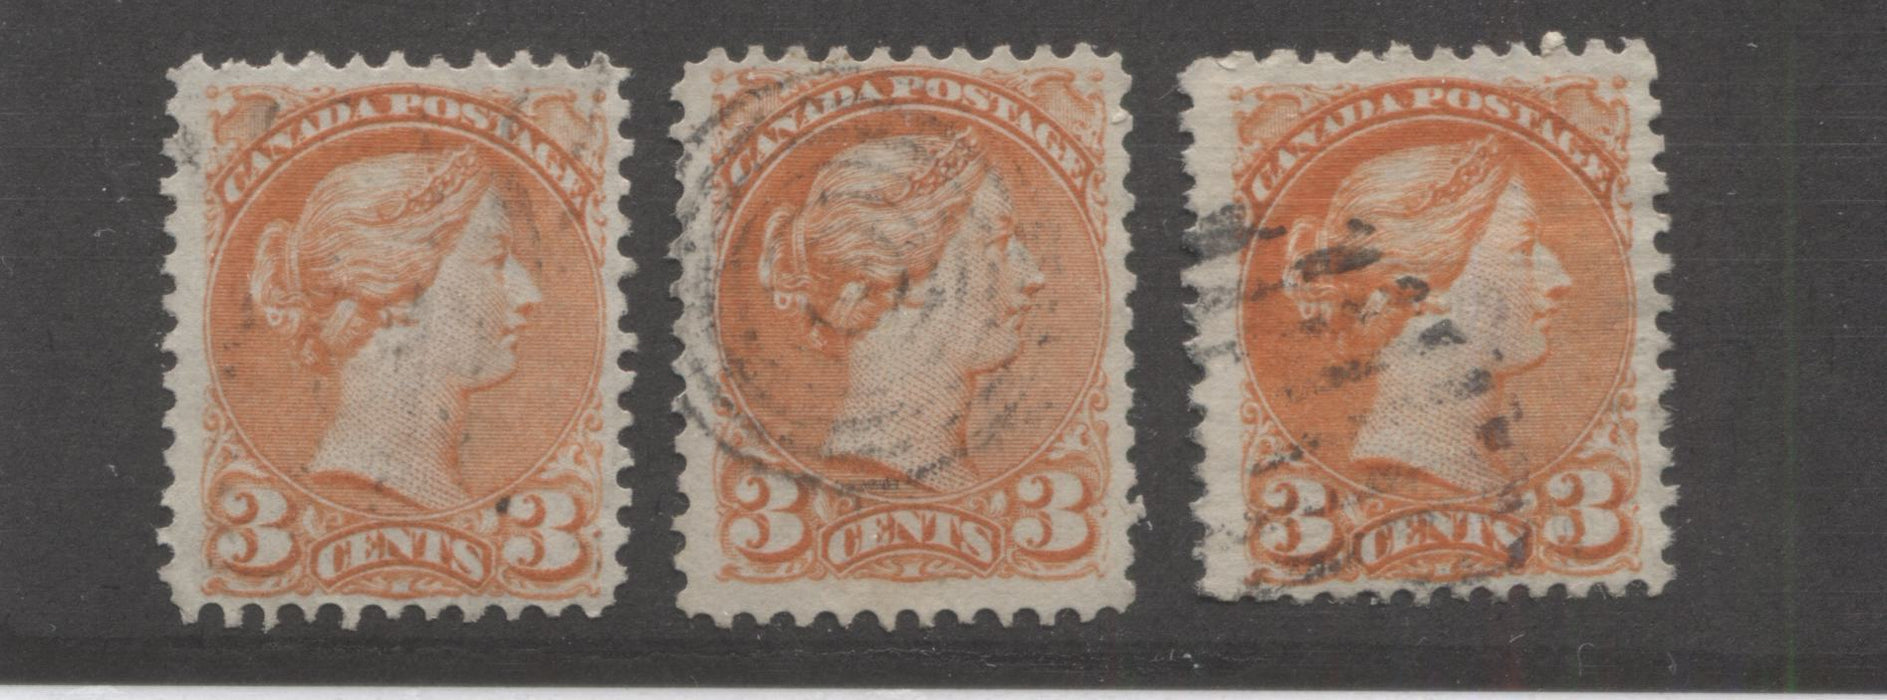 Canada #37iii 3c Orange Red Queen Victoria, 1870-1897 Small Queen Issue, Three Fine Used Examples of the Mid-Montreal Printing, Each a Different Paper or Shade Brixton Chrome